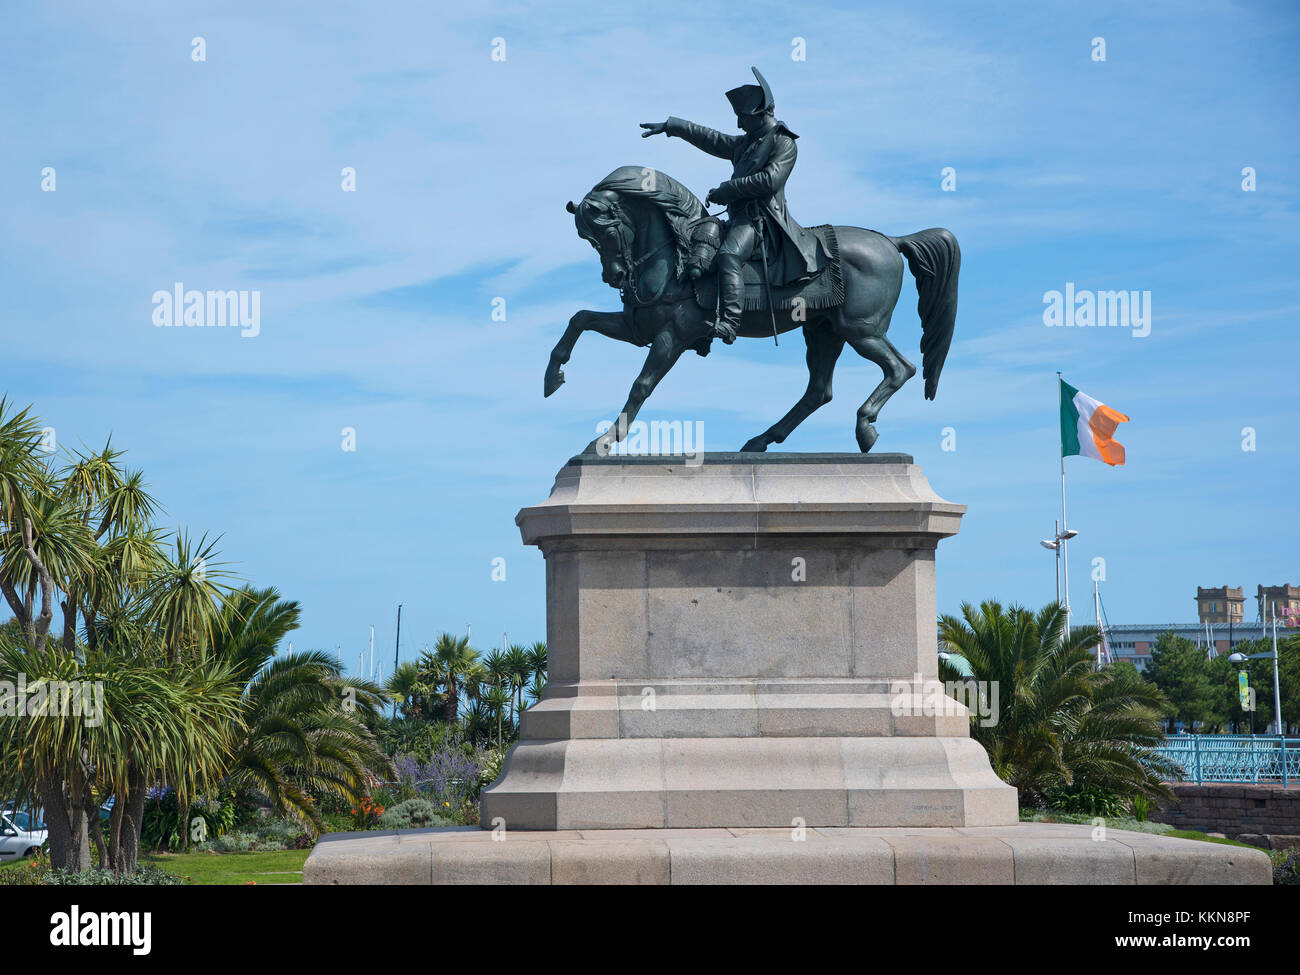 Equestrian statue of Napoleon, in Cherbourg, France - Stock Image